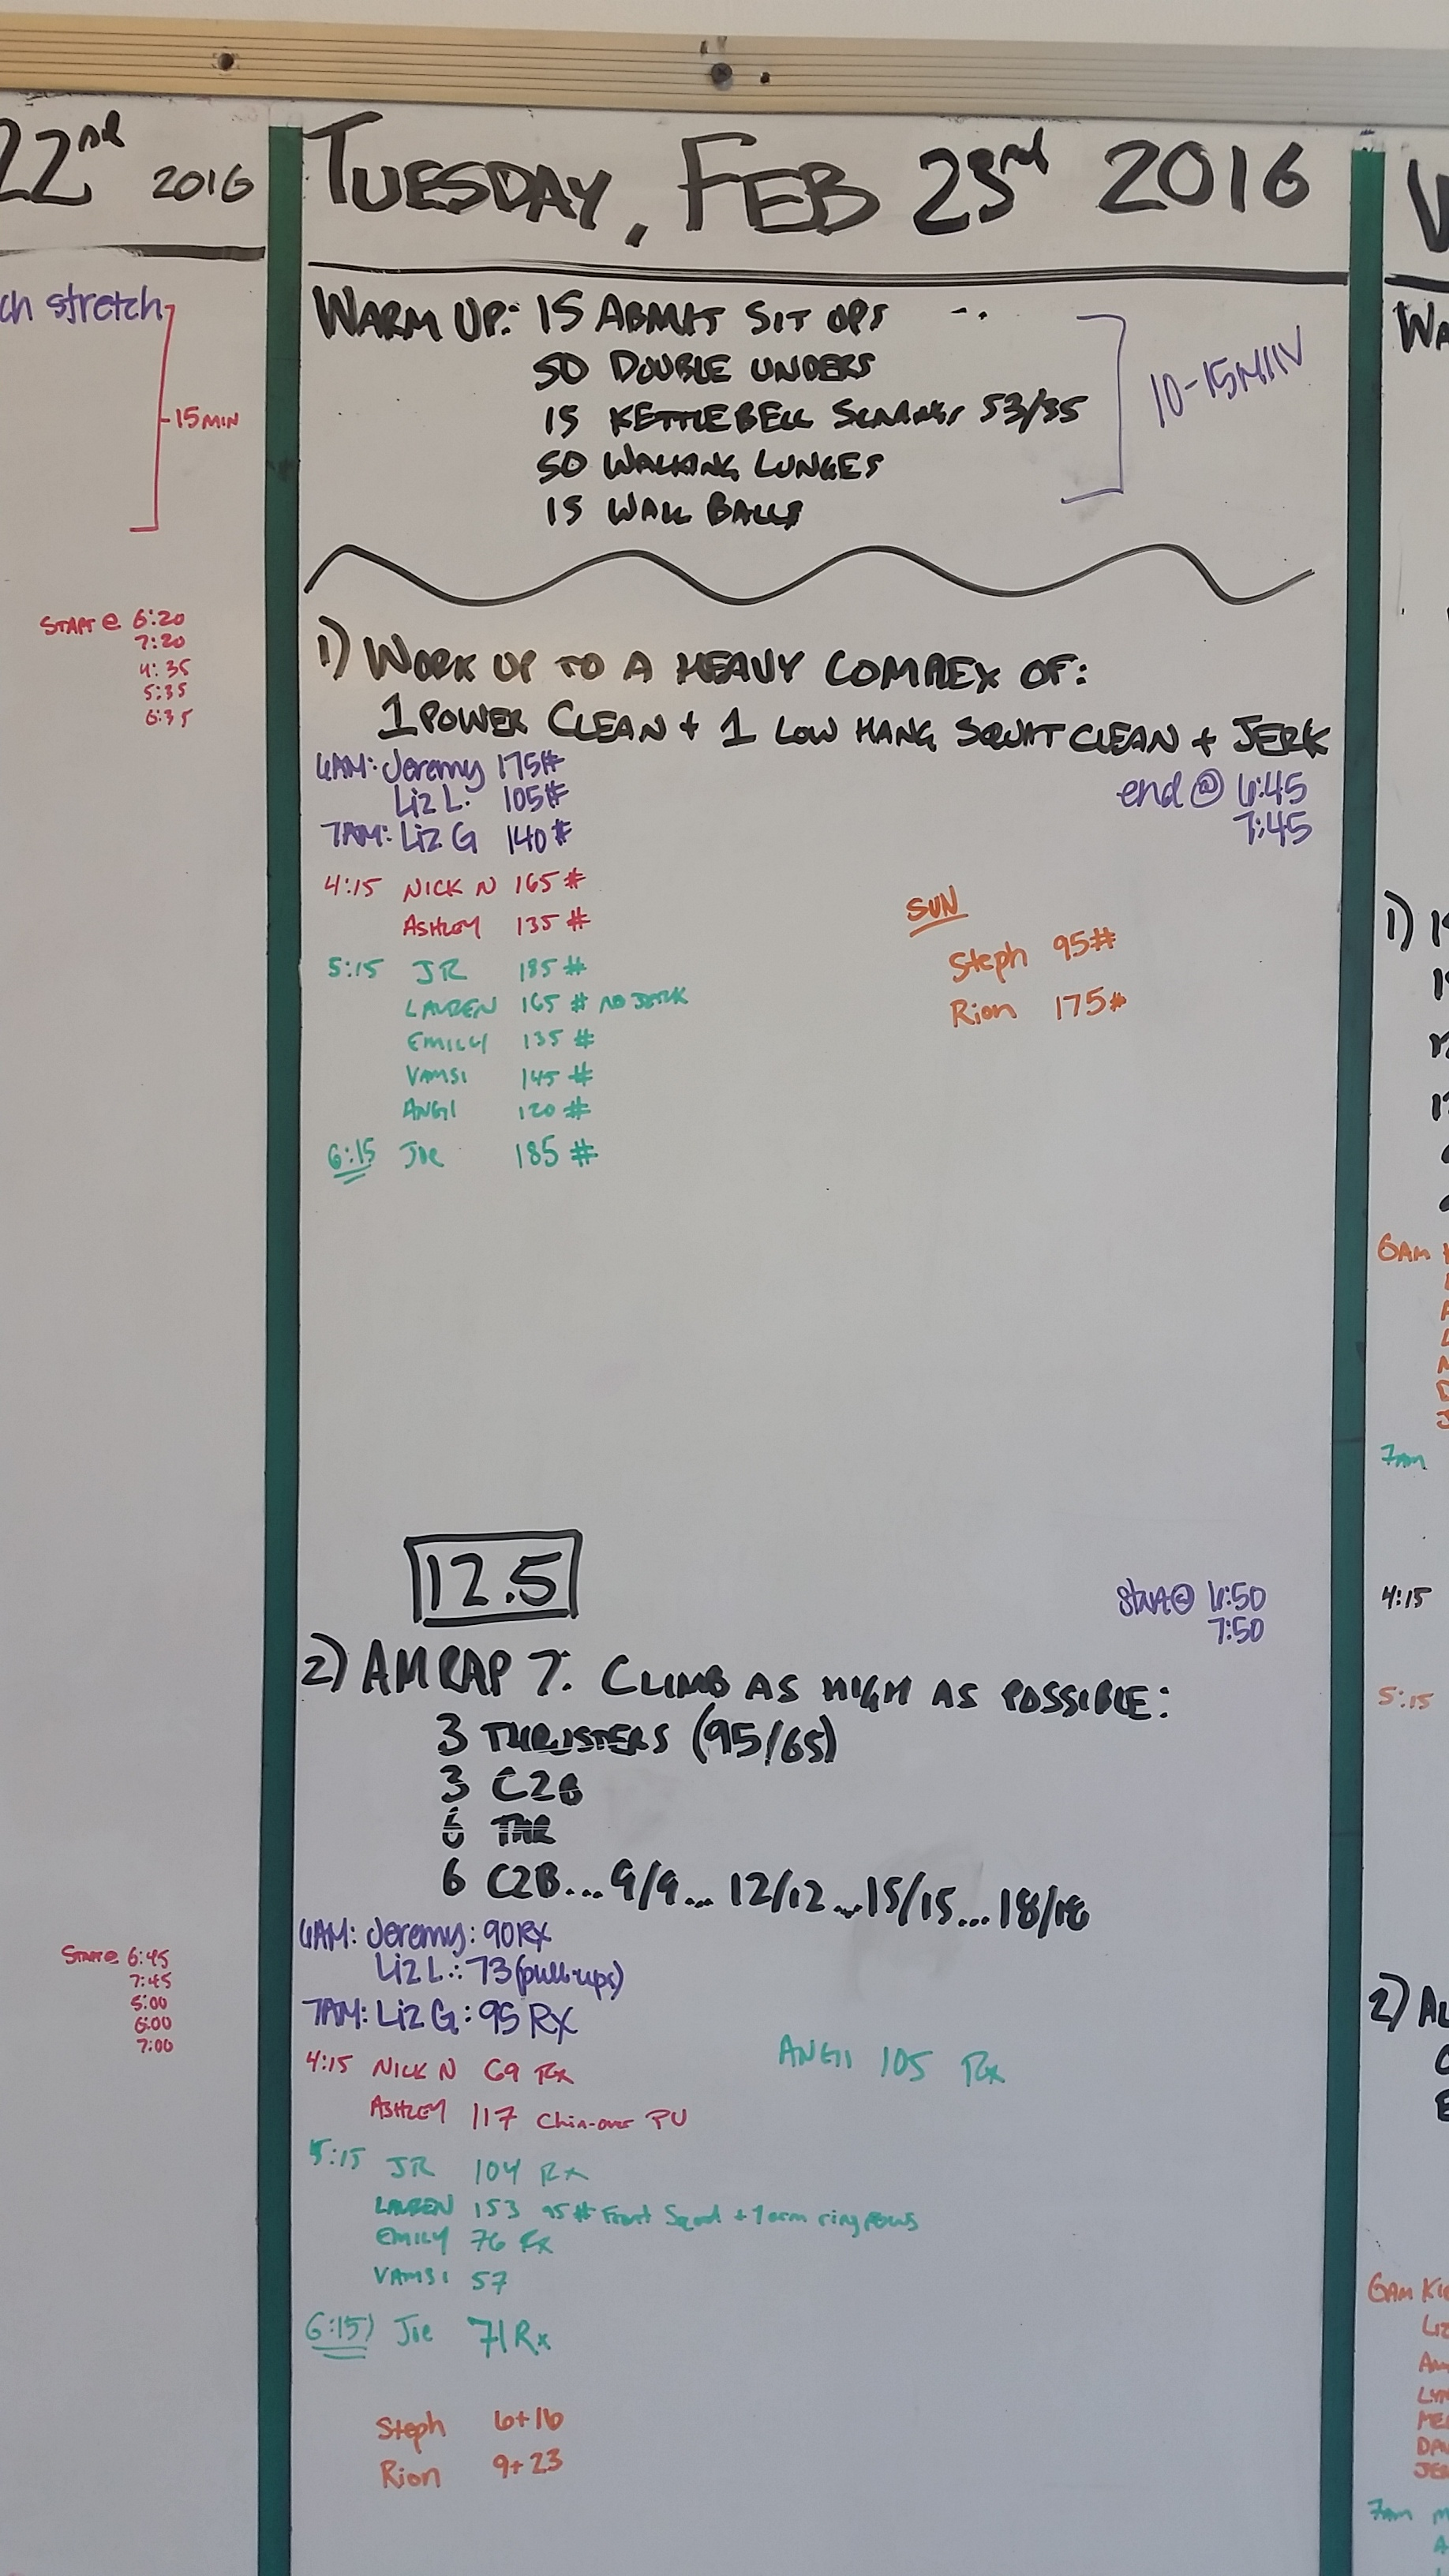 20160223 CrossFit Craft Power Clean Low Hang Squat Clean and Jerk BENCHMARK OPEN 12.5 Thrusters Chest to Bar Pull Ups